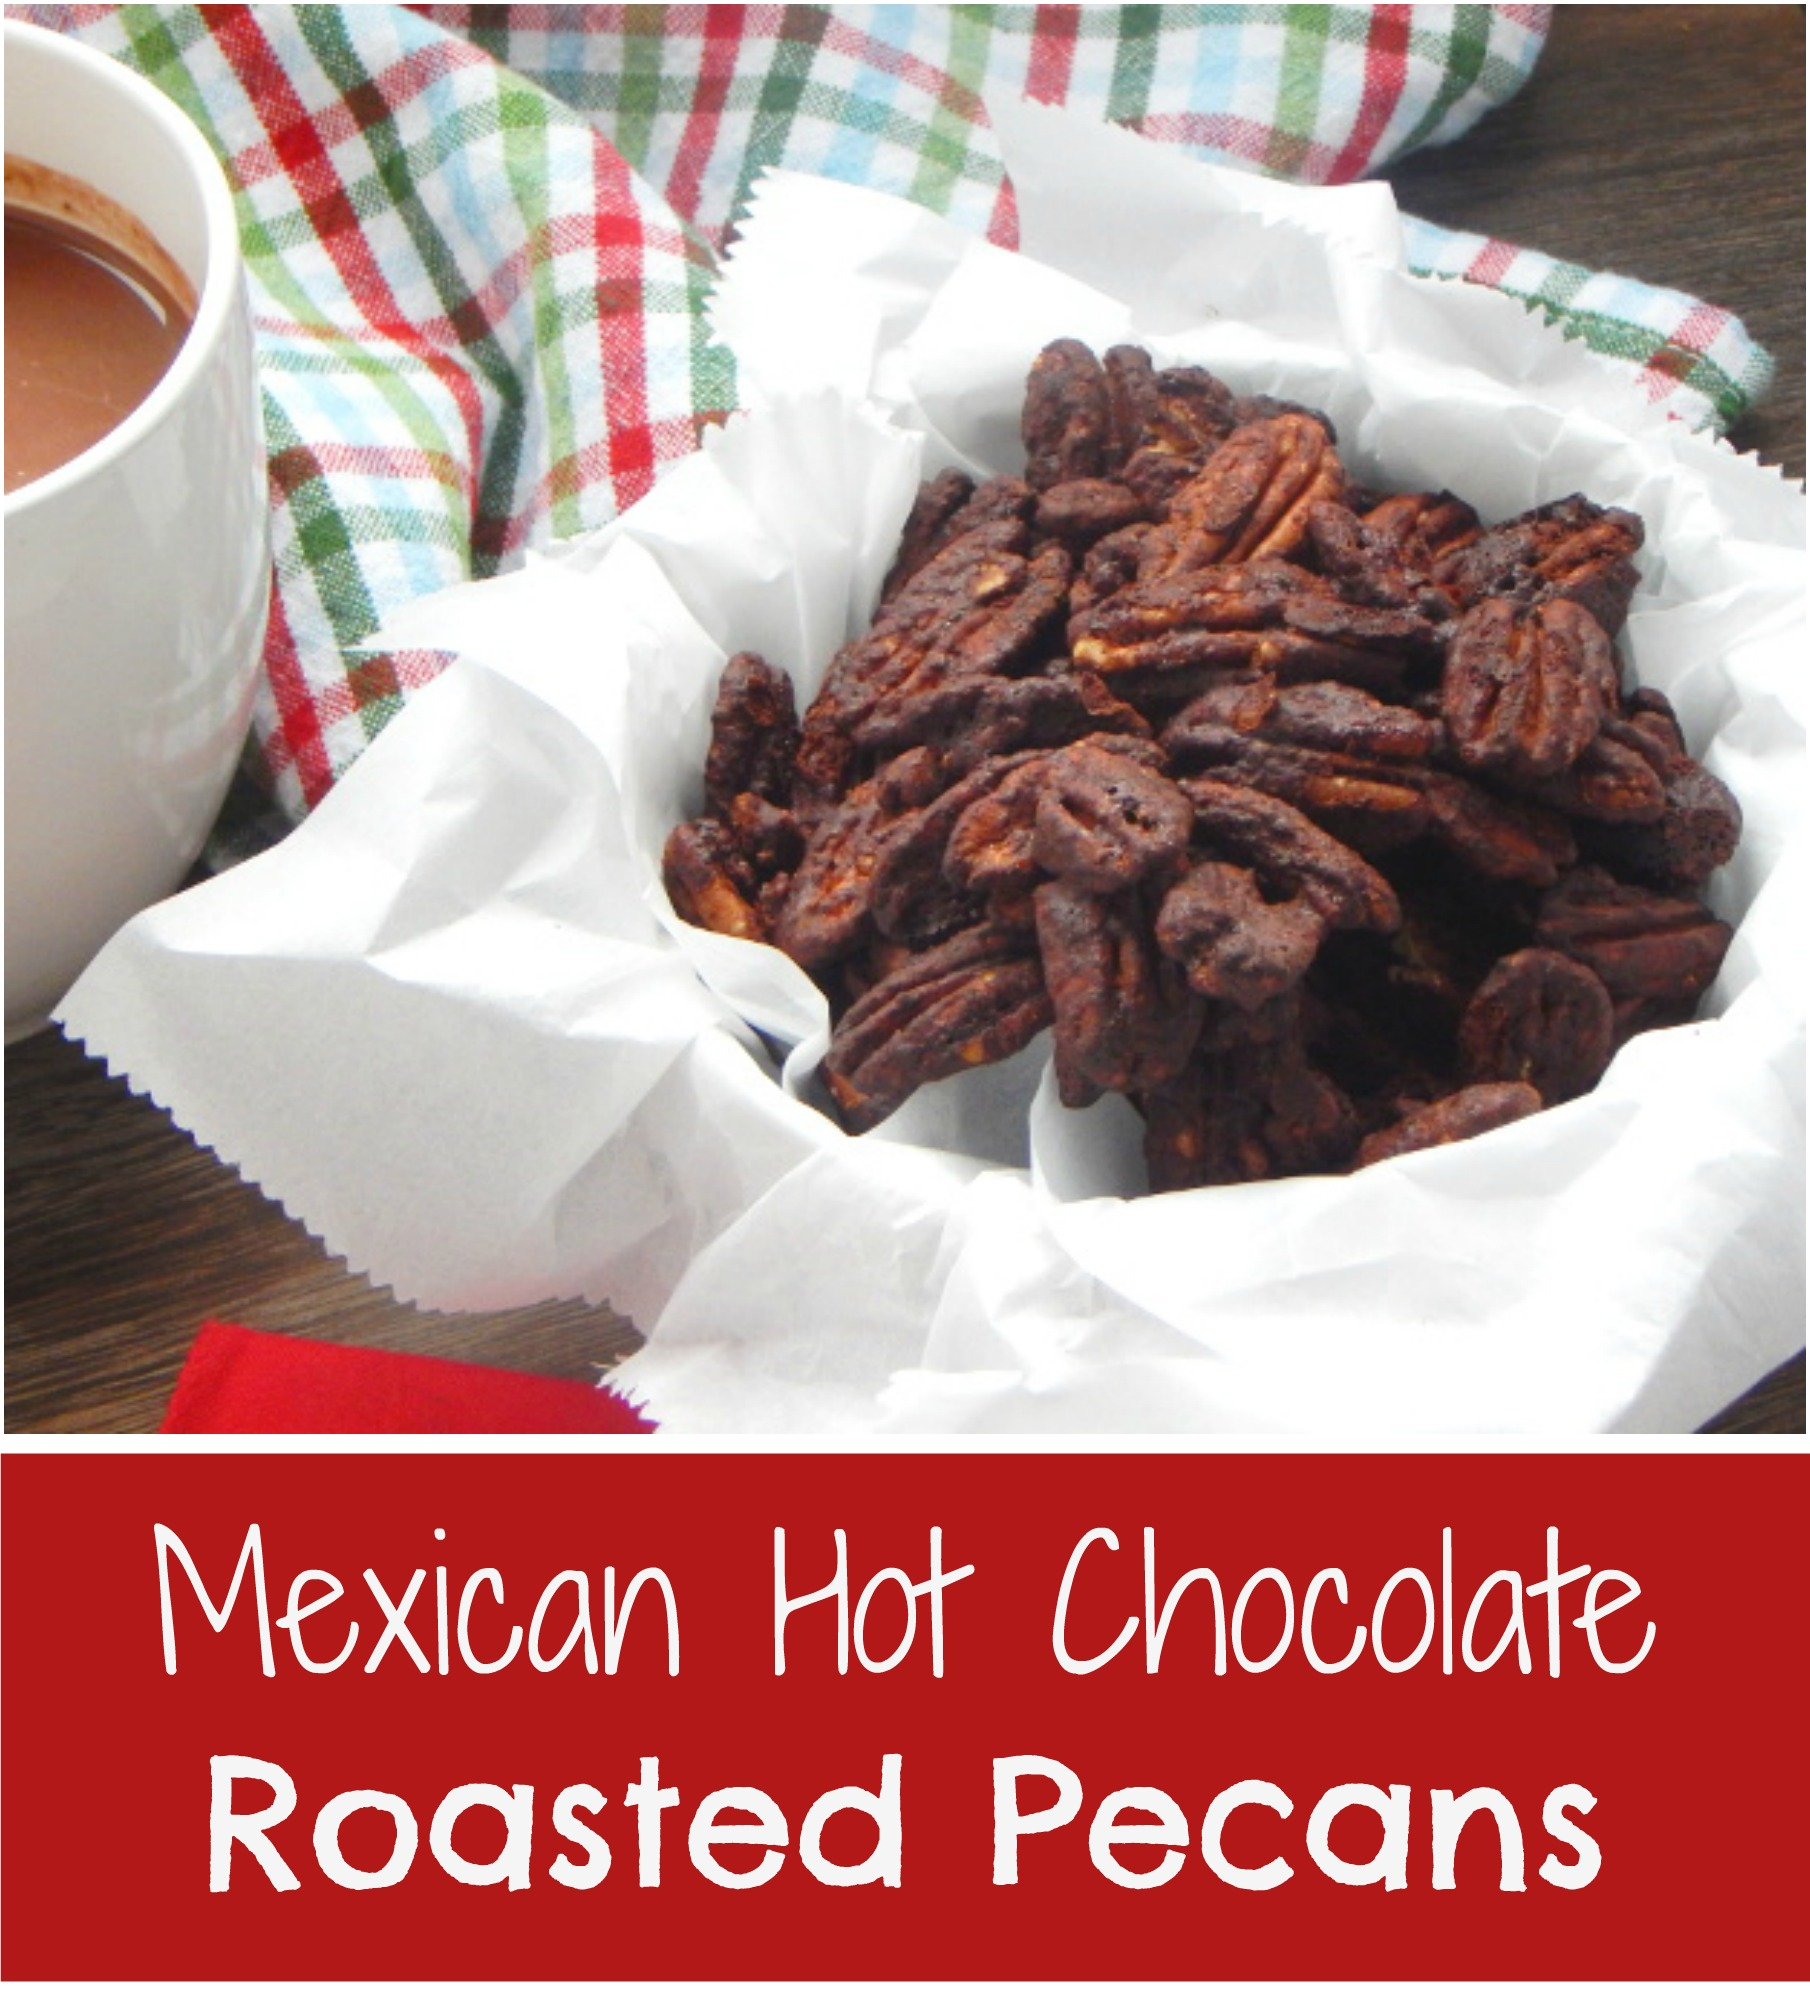 Mexican Hot Chocolate Roasted Pecans